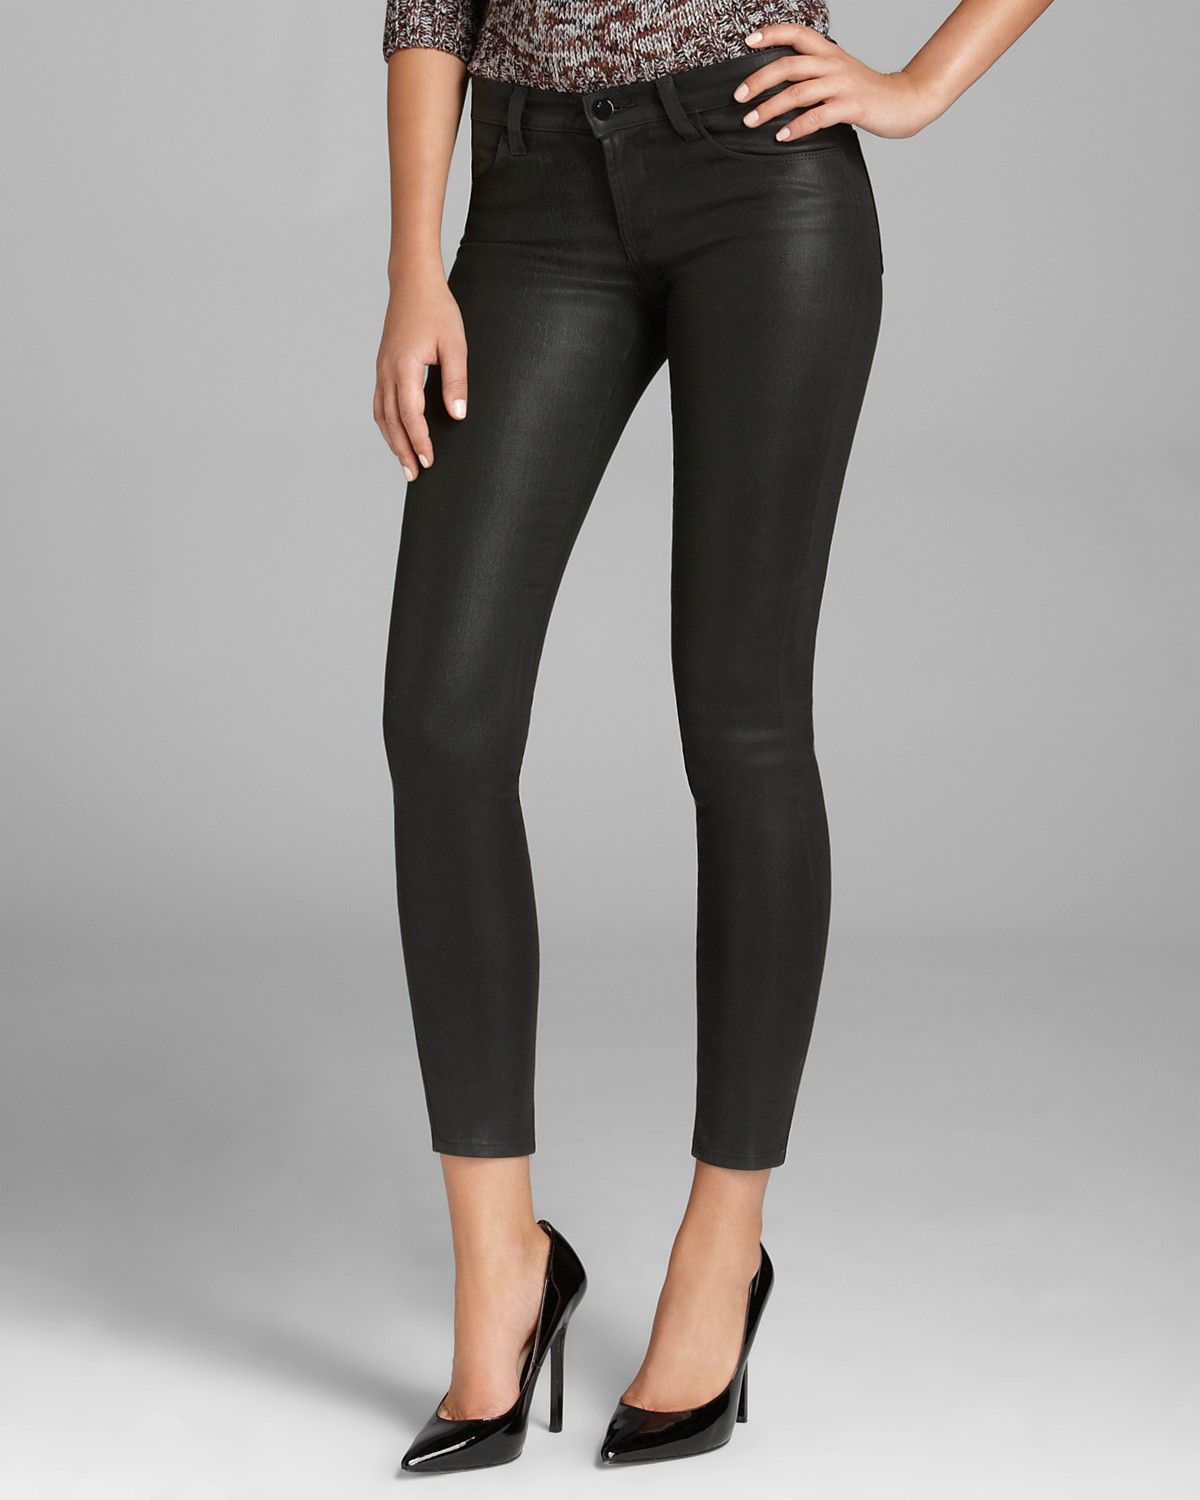 J Brand Jeans - 620 Mid Rise Super Skinny in Lacquered Black Quartz |  Bloomingdale's